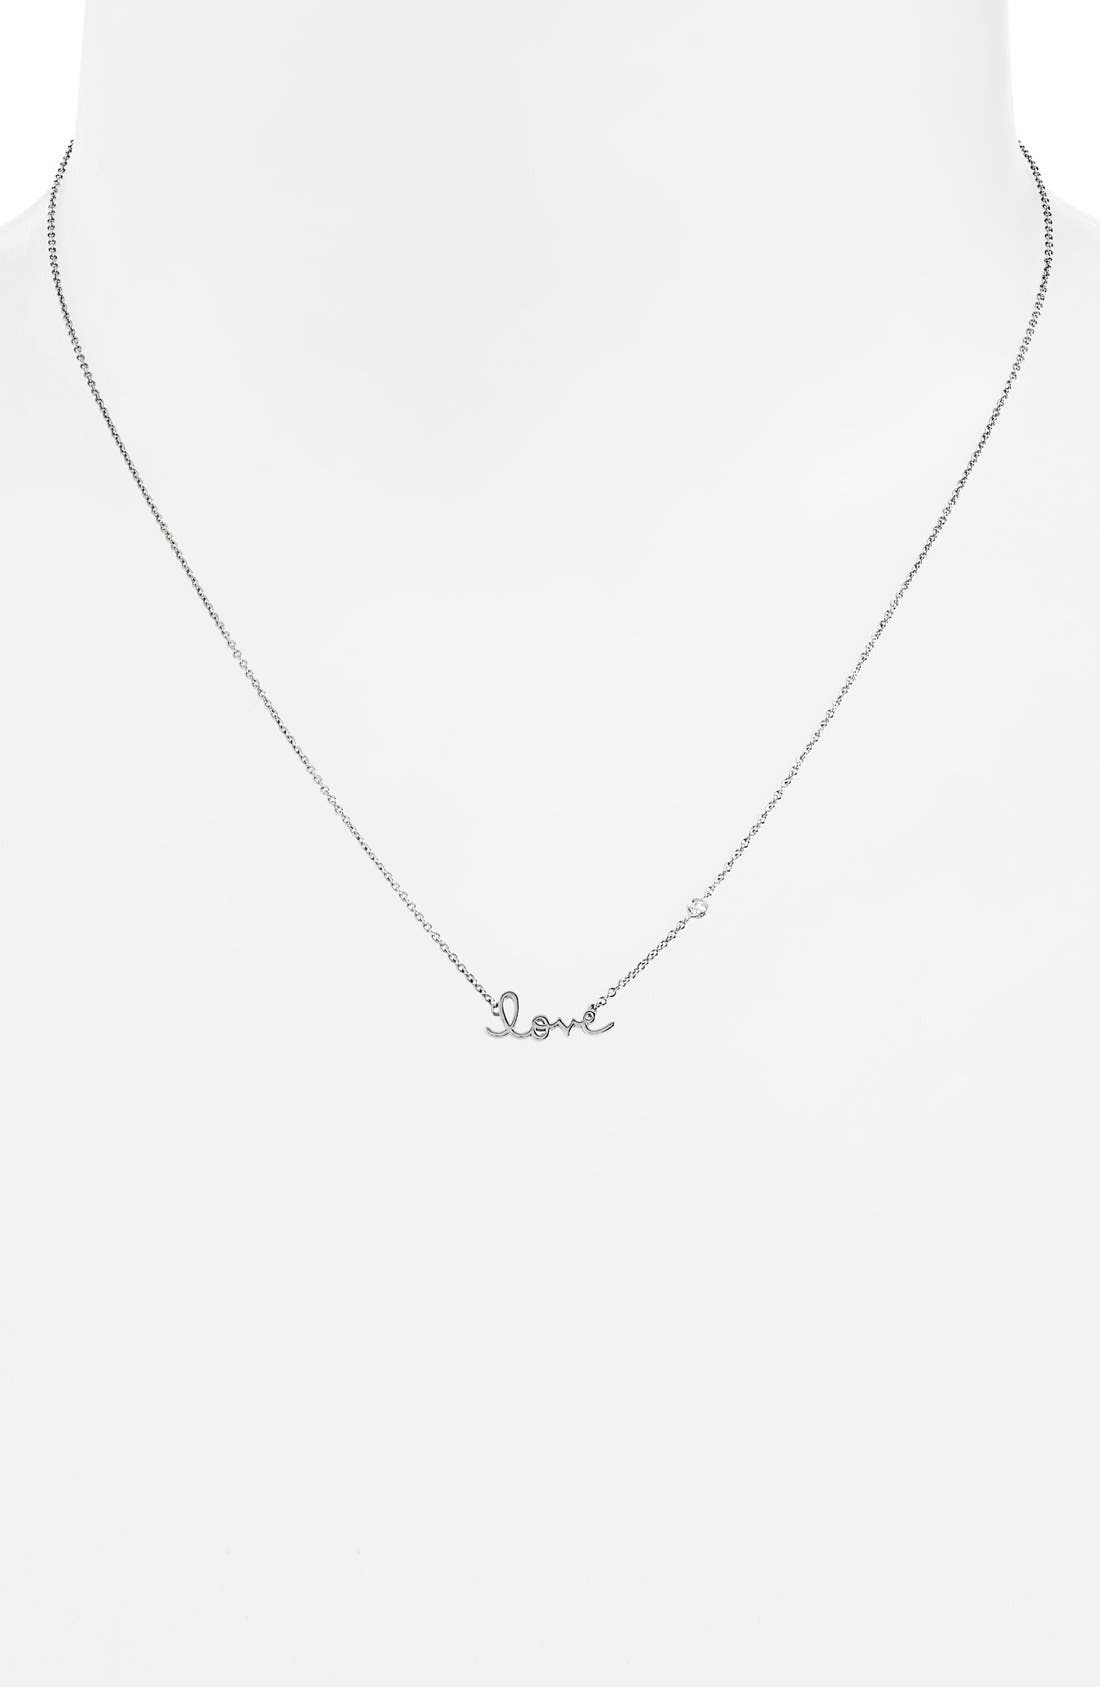 'Love' Necklace,                             Alternate thumbnail 2, color,                             Silver